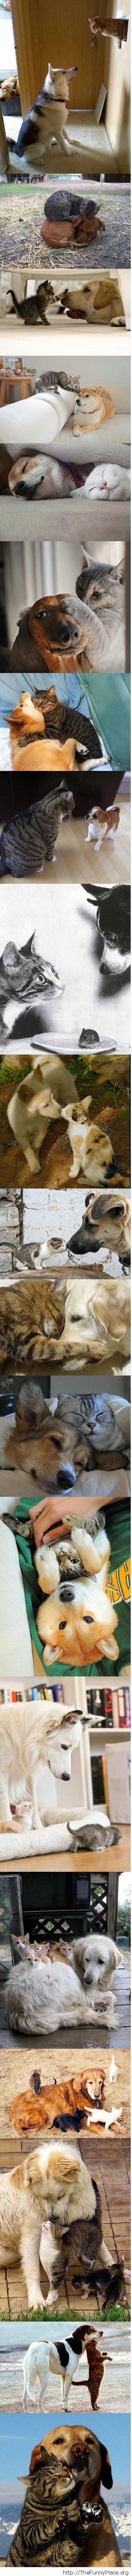 Dogs and cats - Best friends